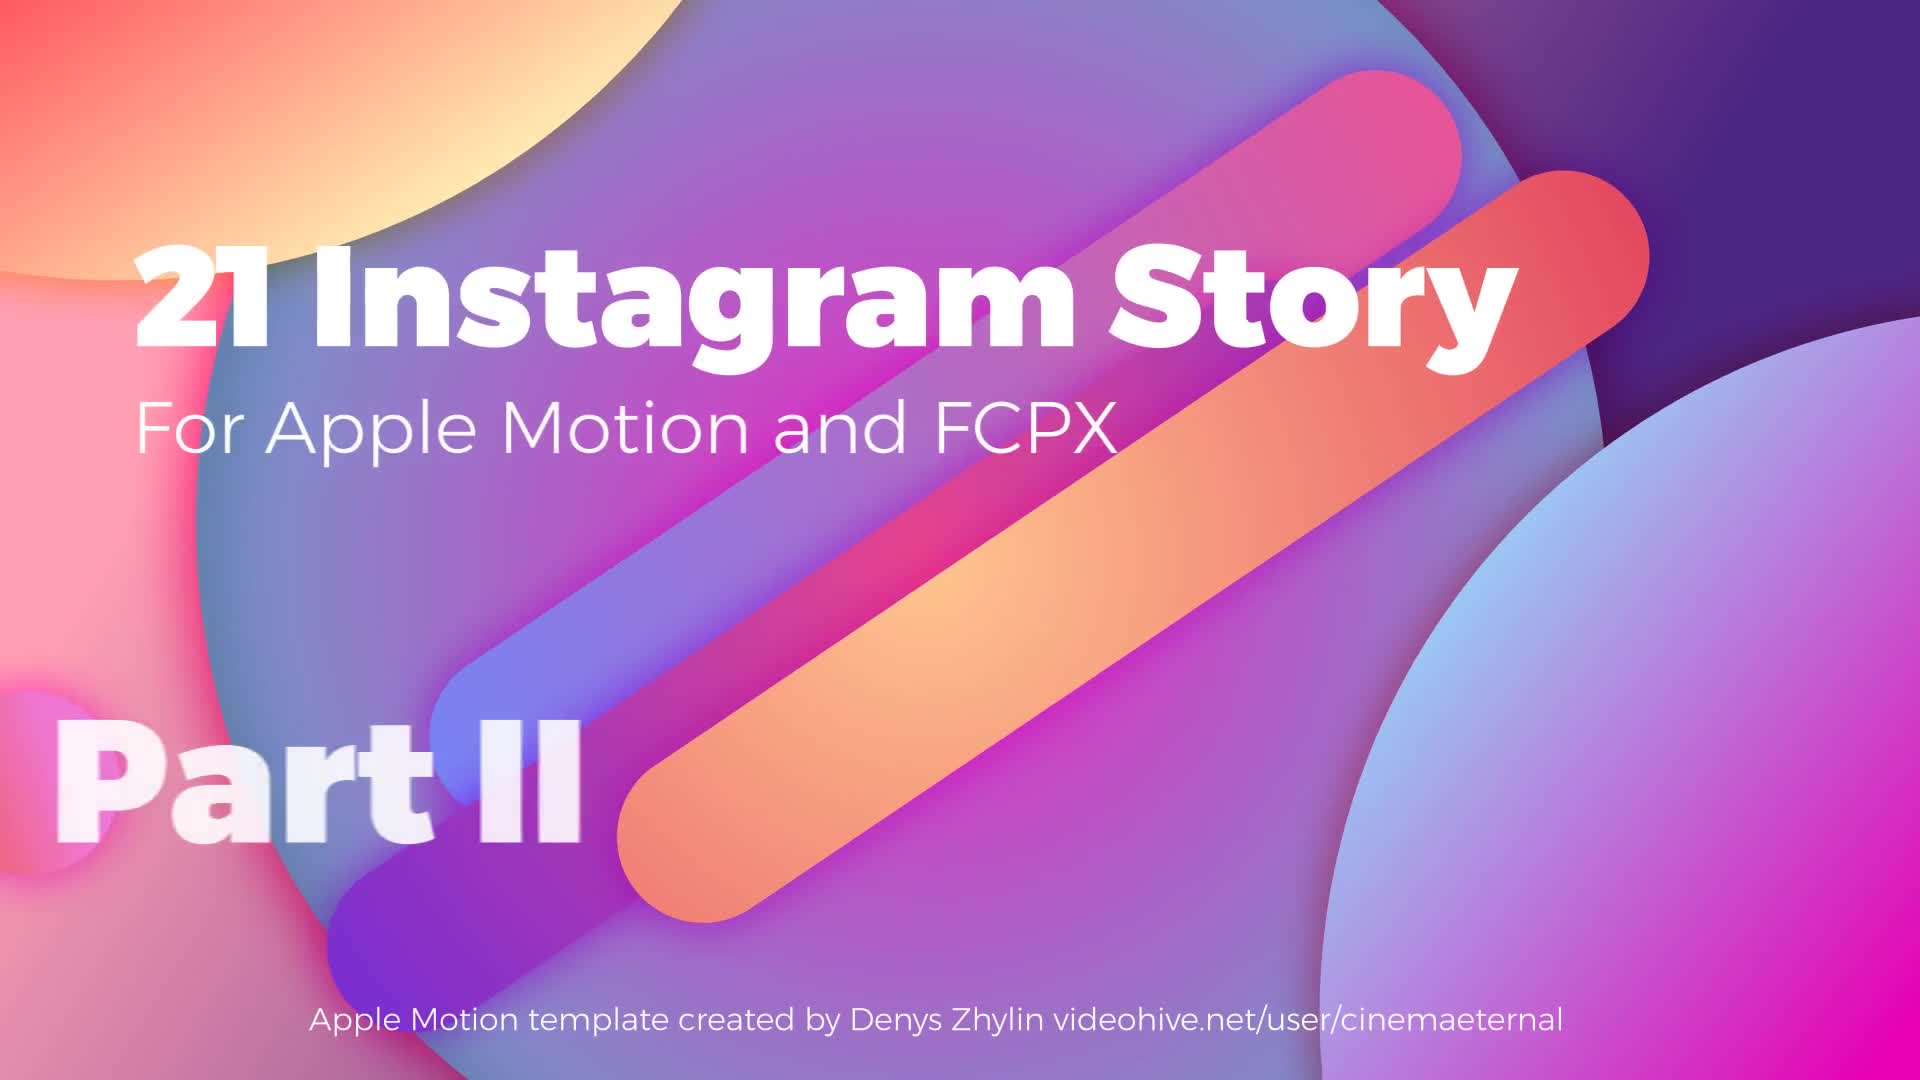 Instagram Stories for Apple Motion and FCPX Part 2